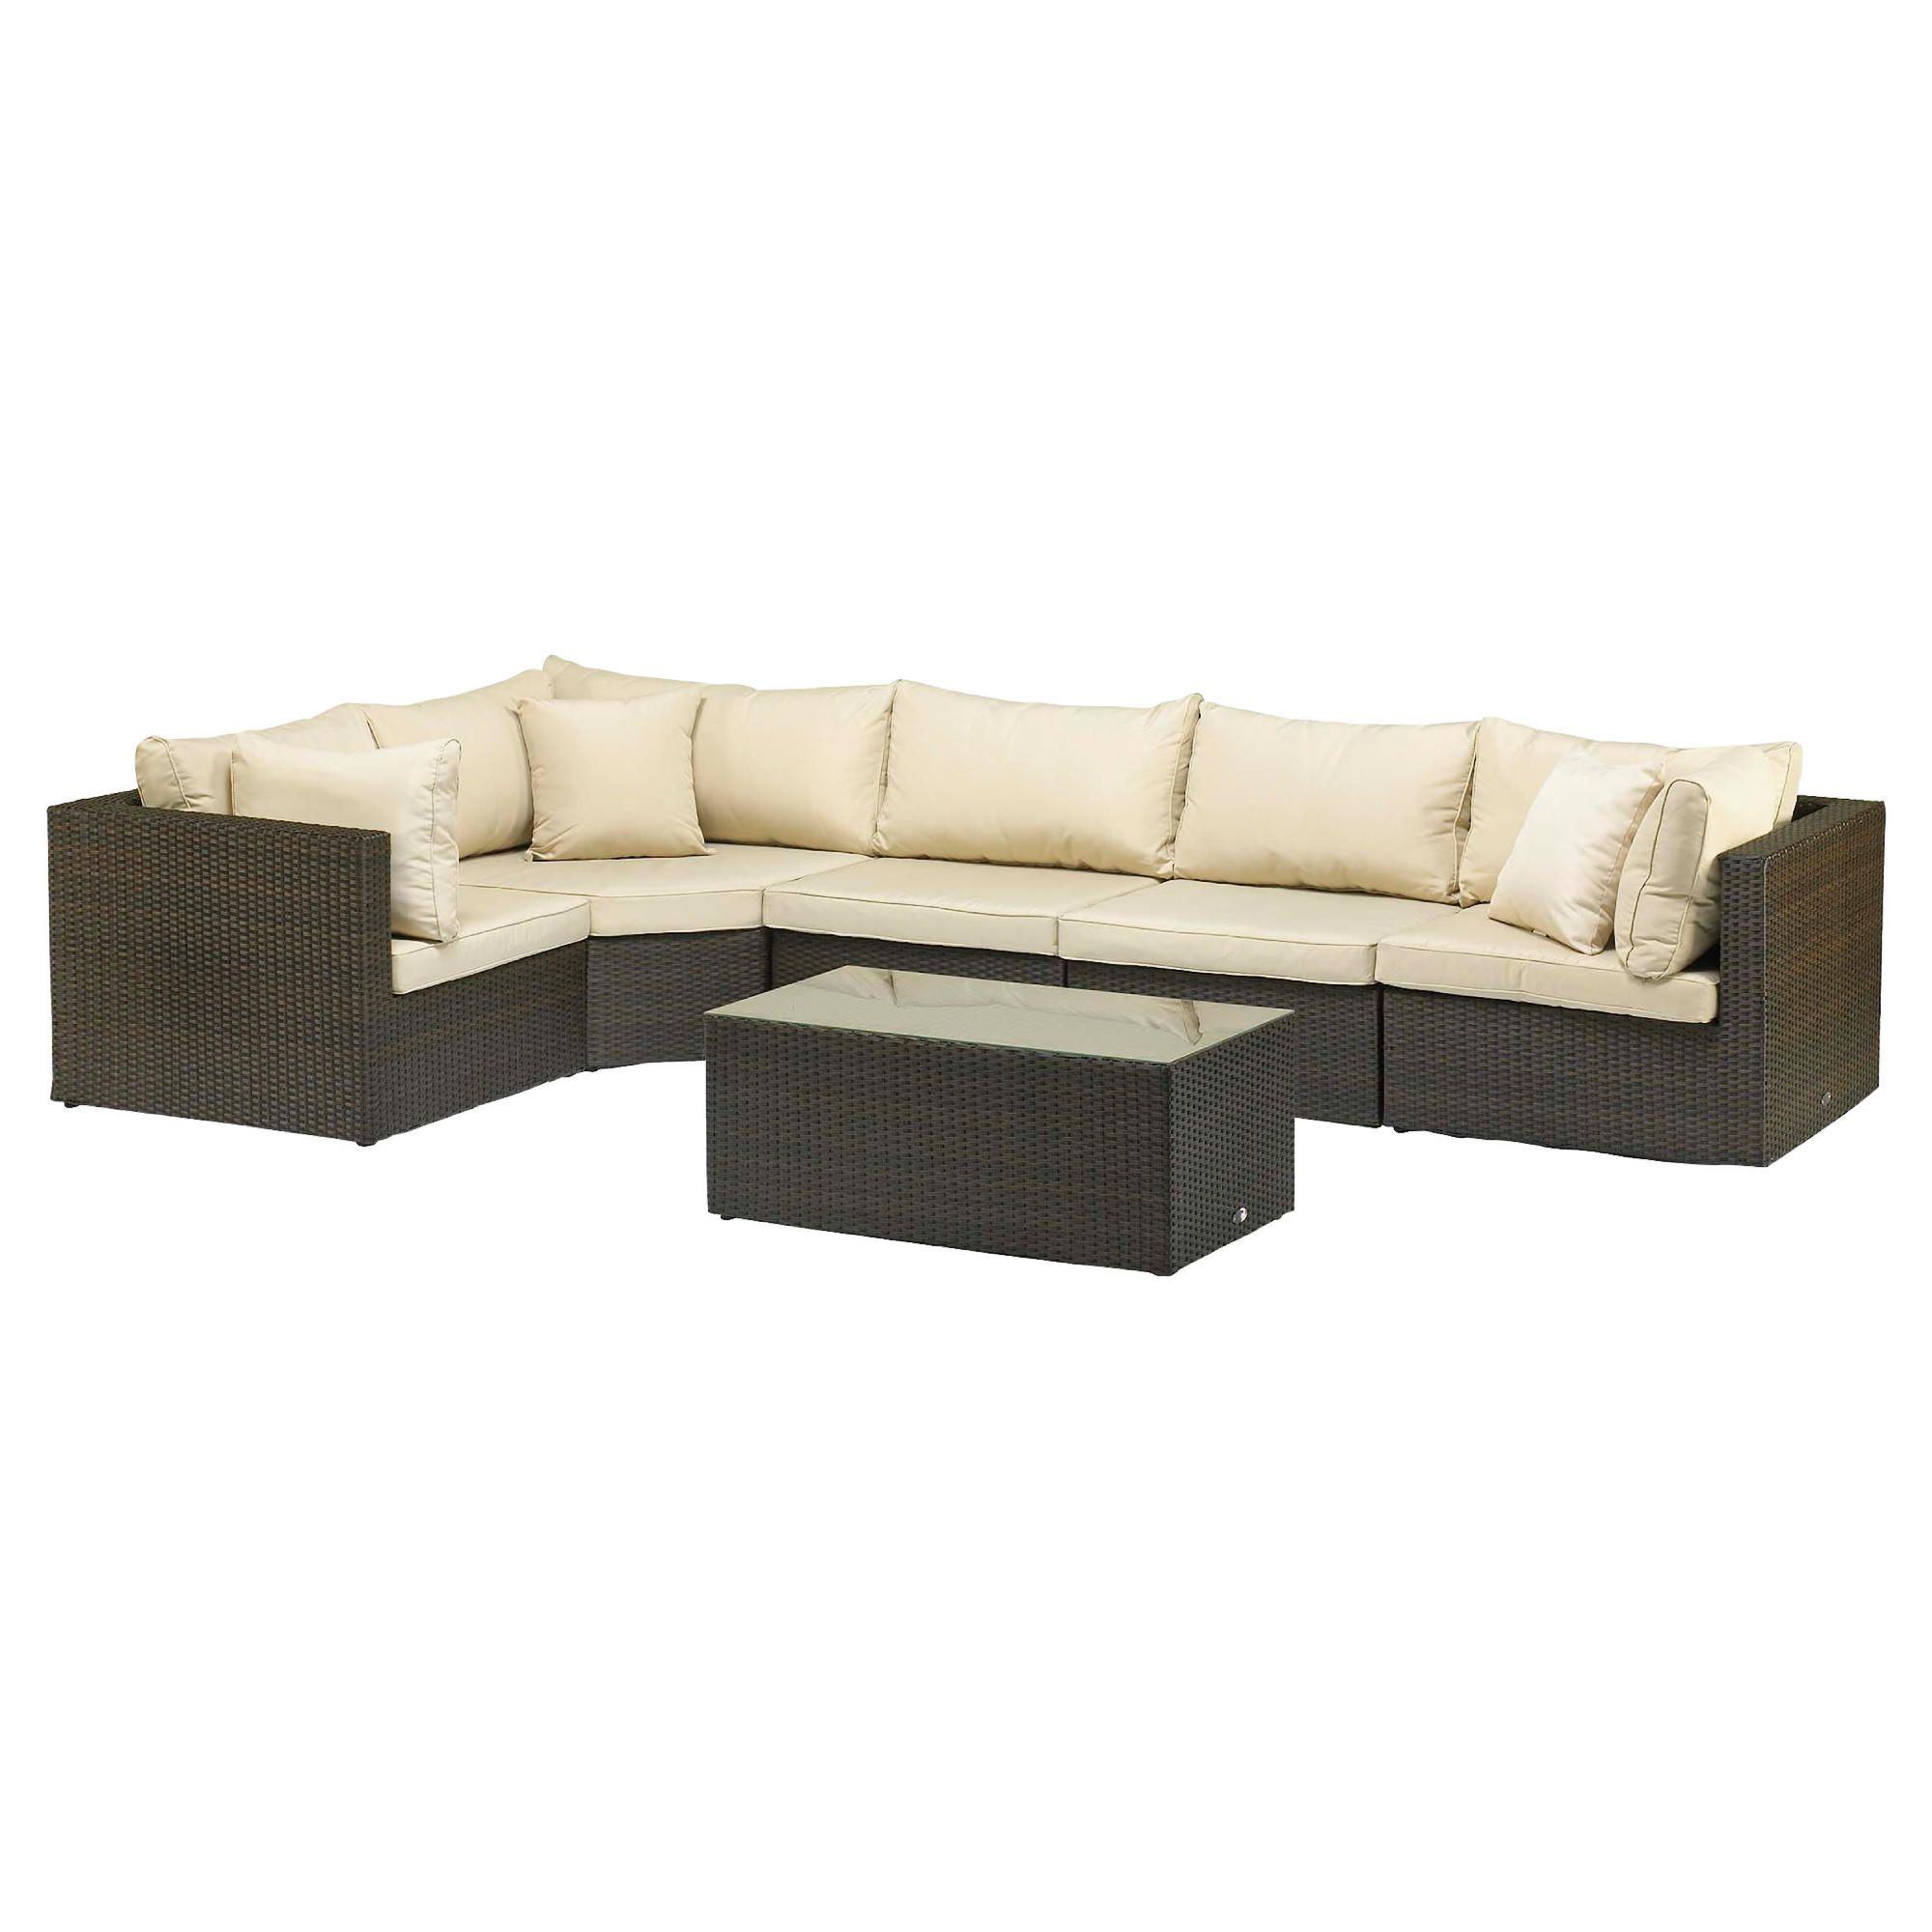 Royalcraft Cannes  Modular Lounge Suite - 5 seater - Brown at Tesco Direct